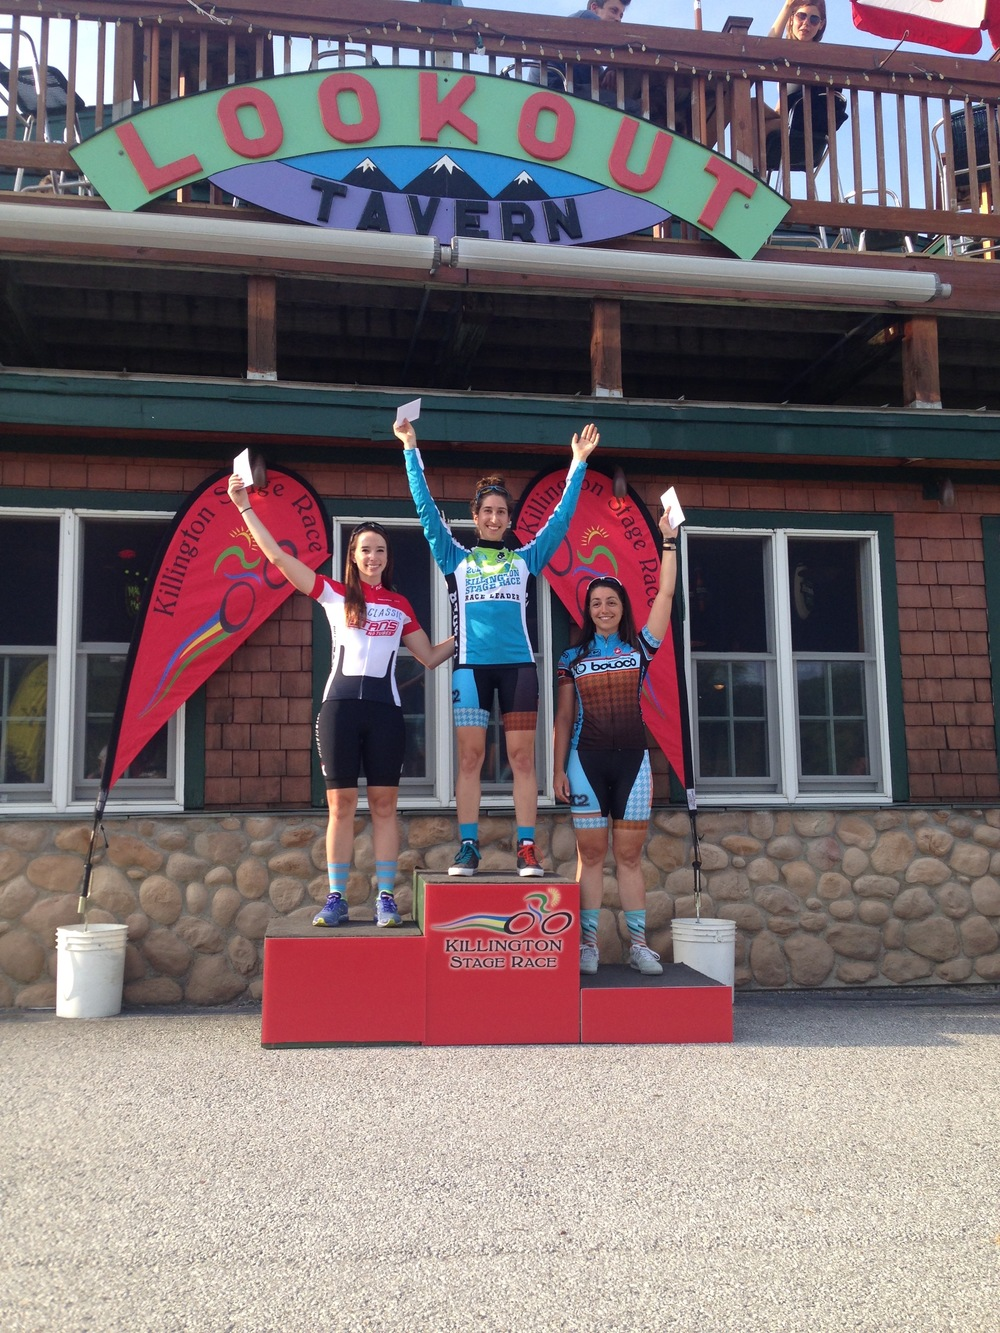 Such B2C2 Such good podium form.